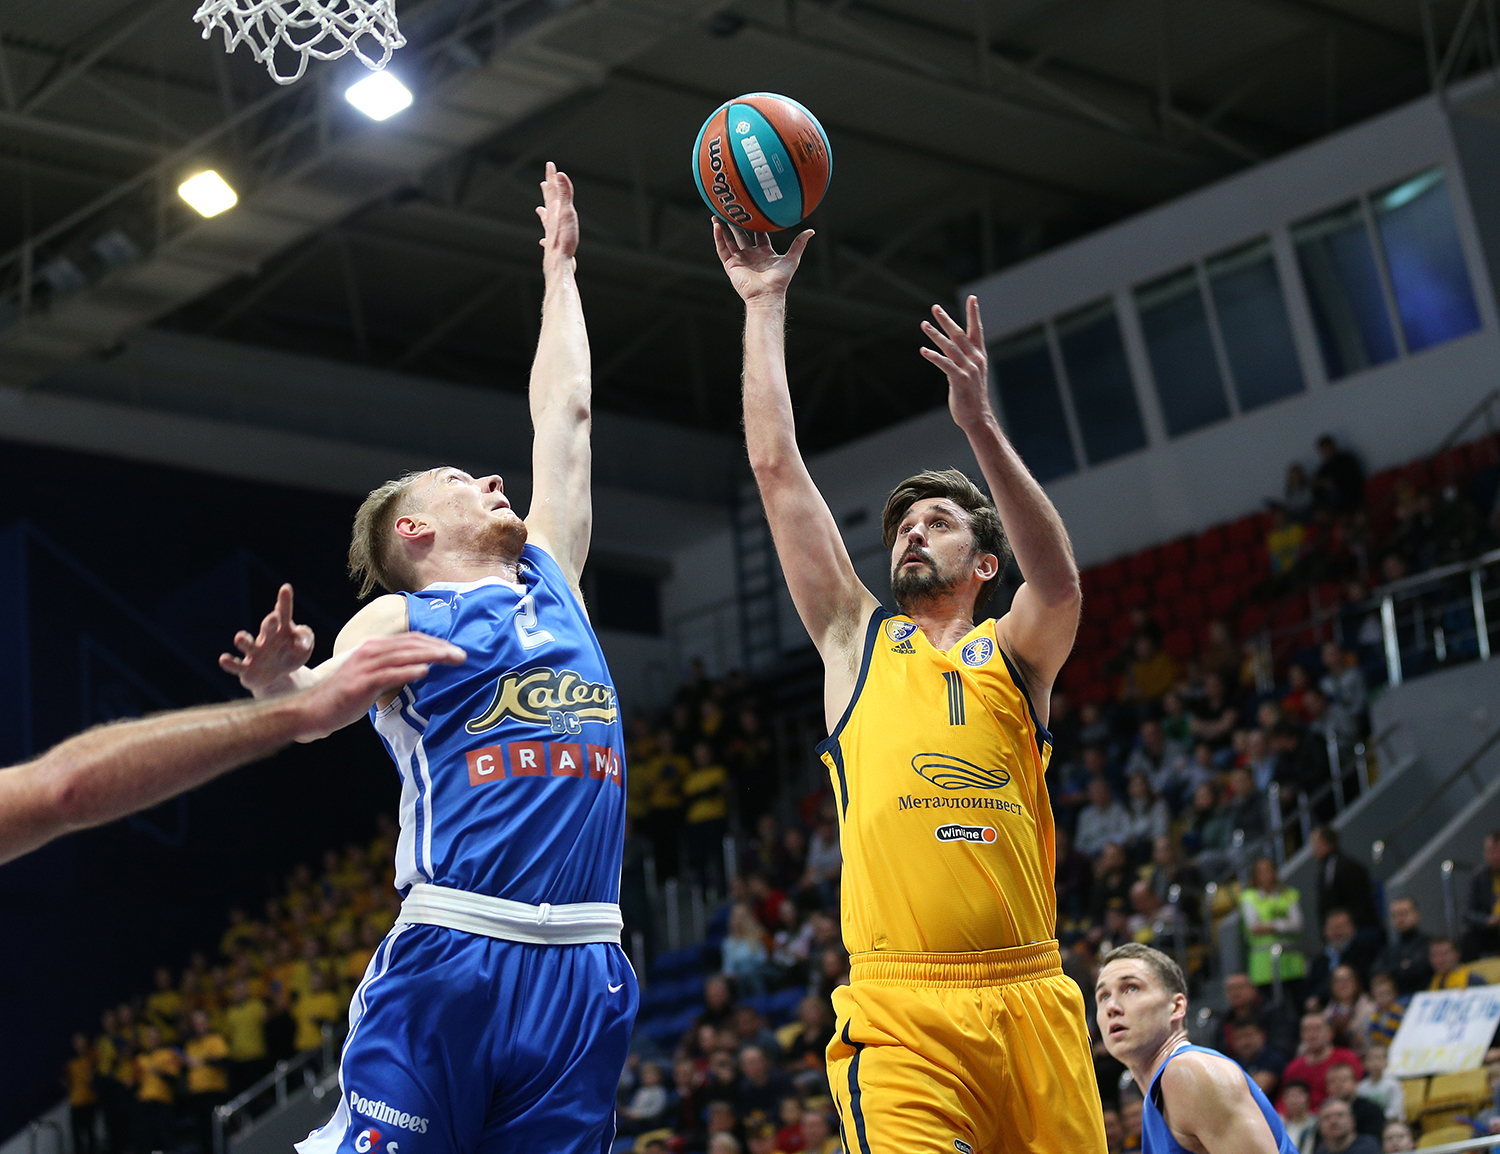 Khimki set two new season records and continue winning streak